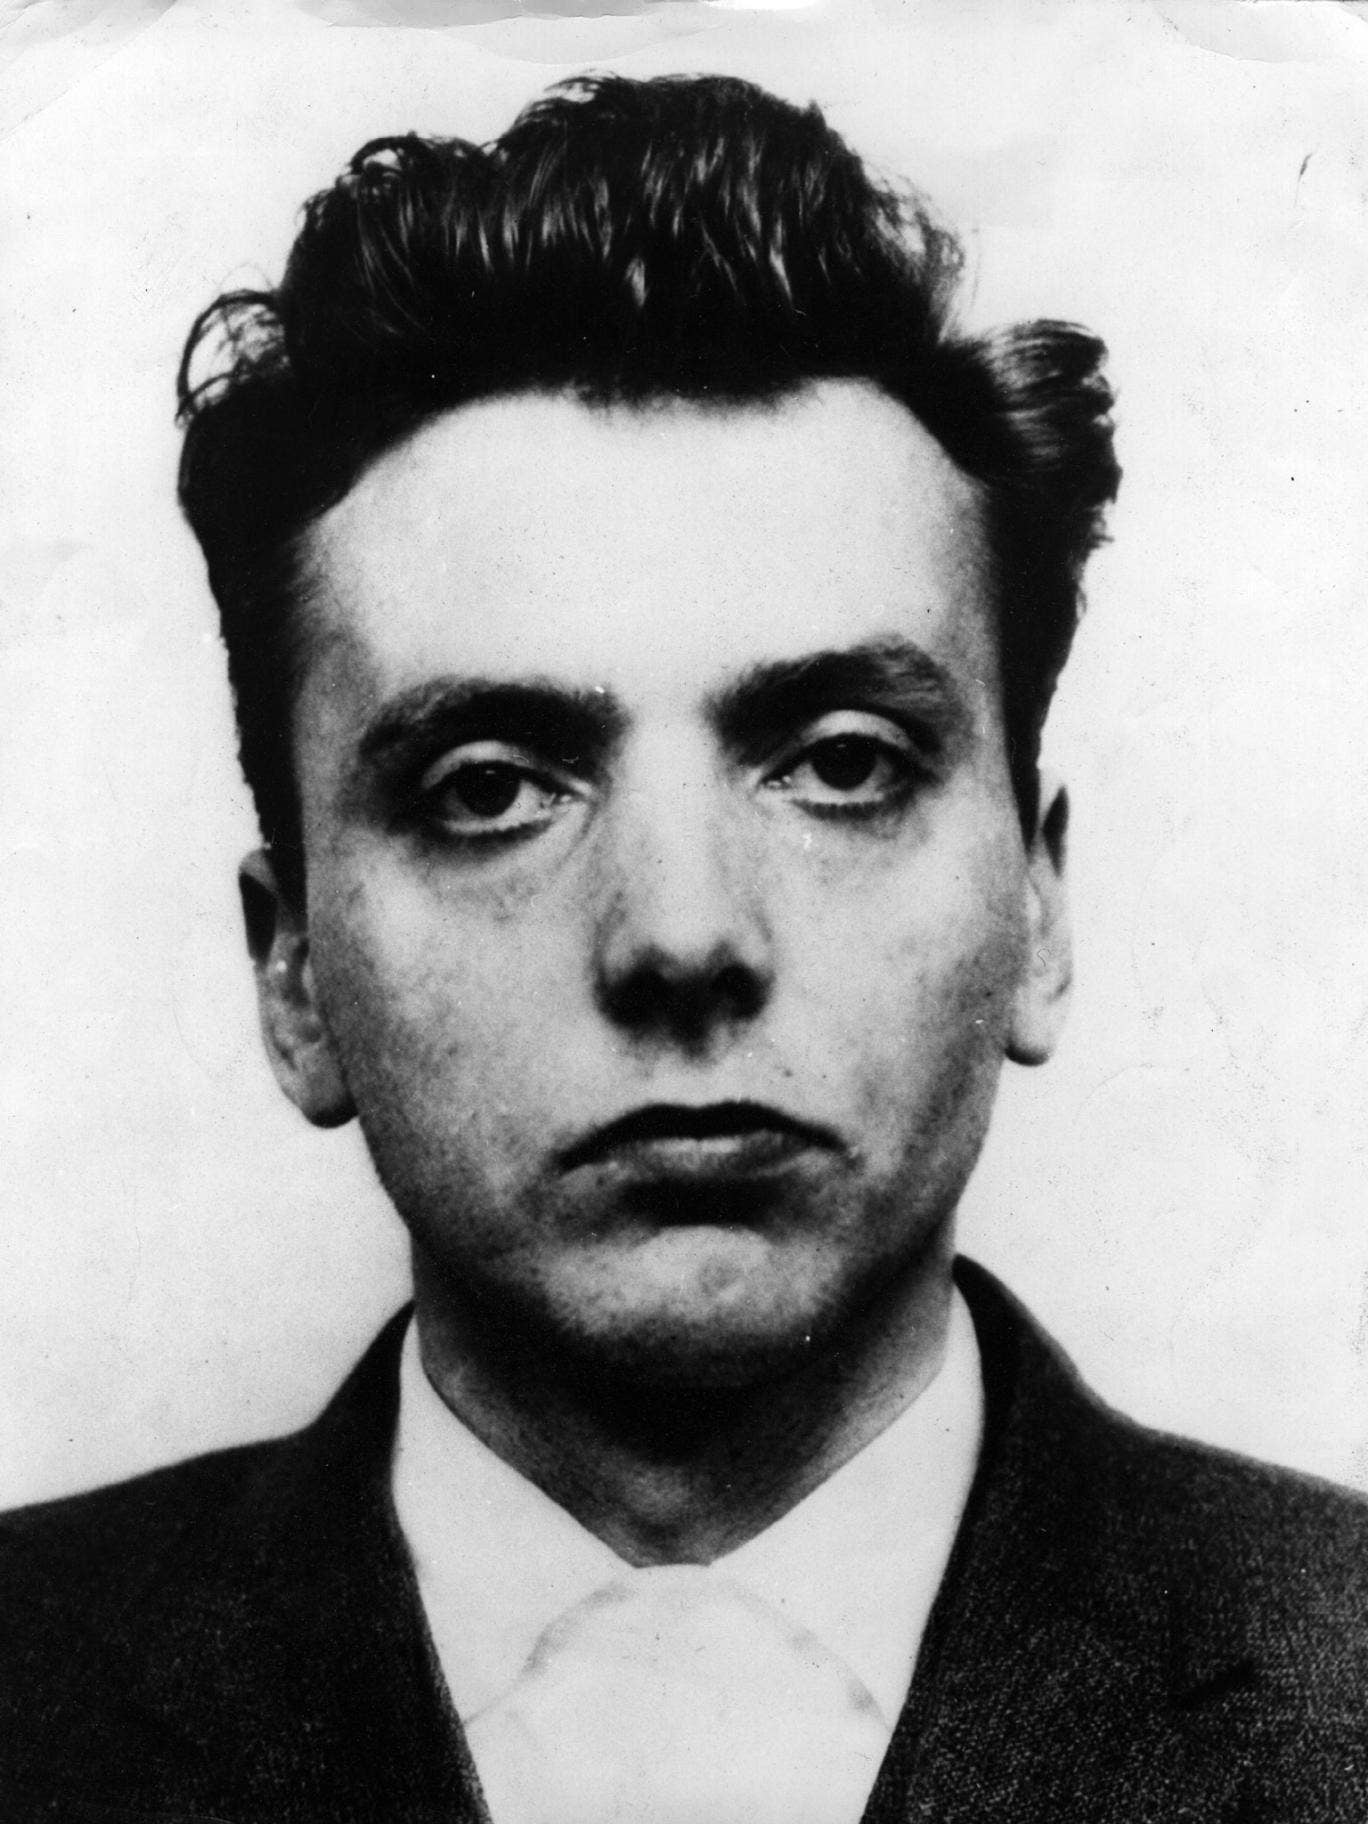 Letter from Ian Brady may have been his latest mind game